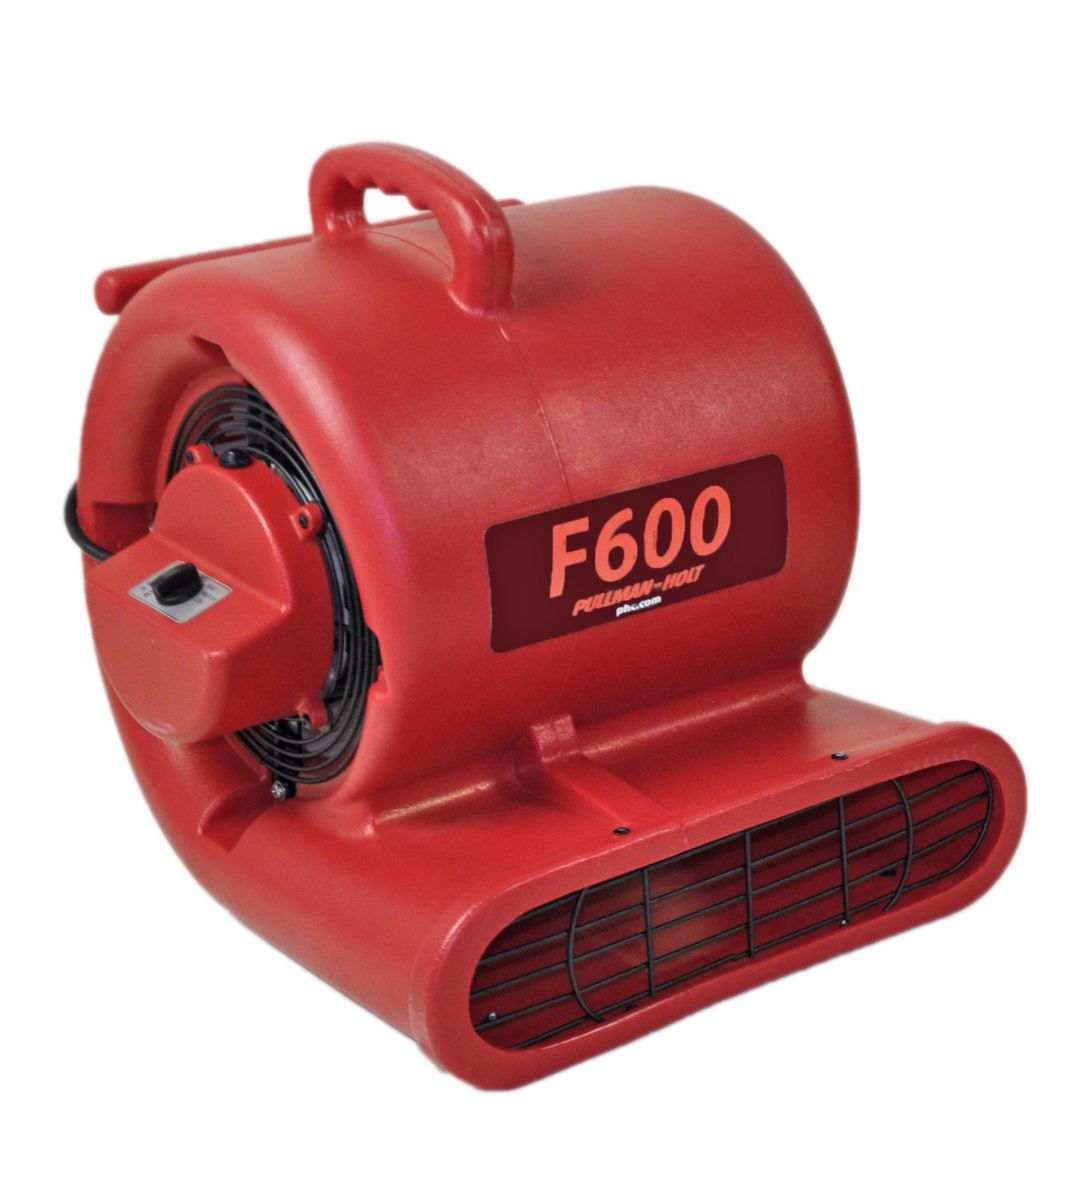 Pullman Holt F600 Air Mover 2500 CFM with 1/2 HP 3-speed 4.7 amp motor B260864